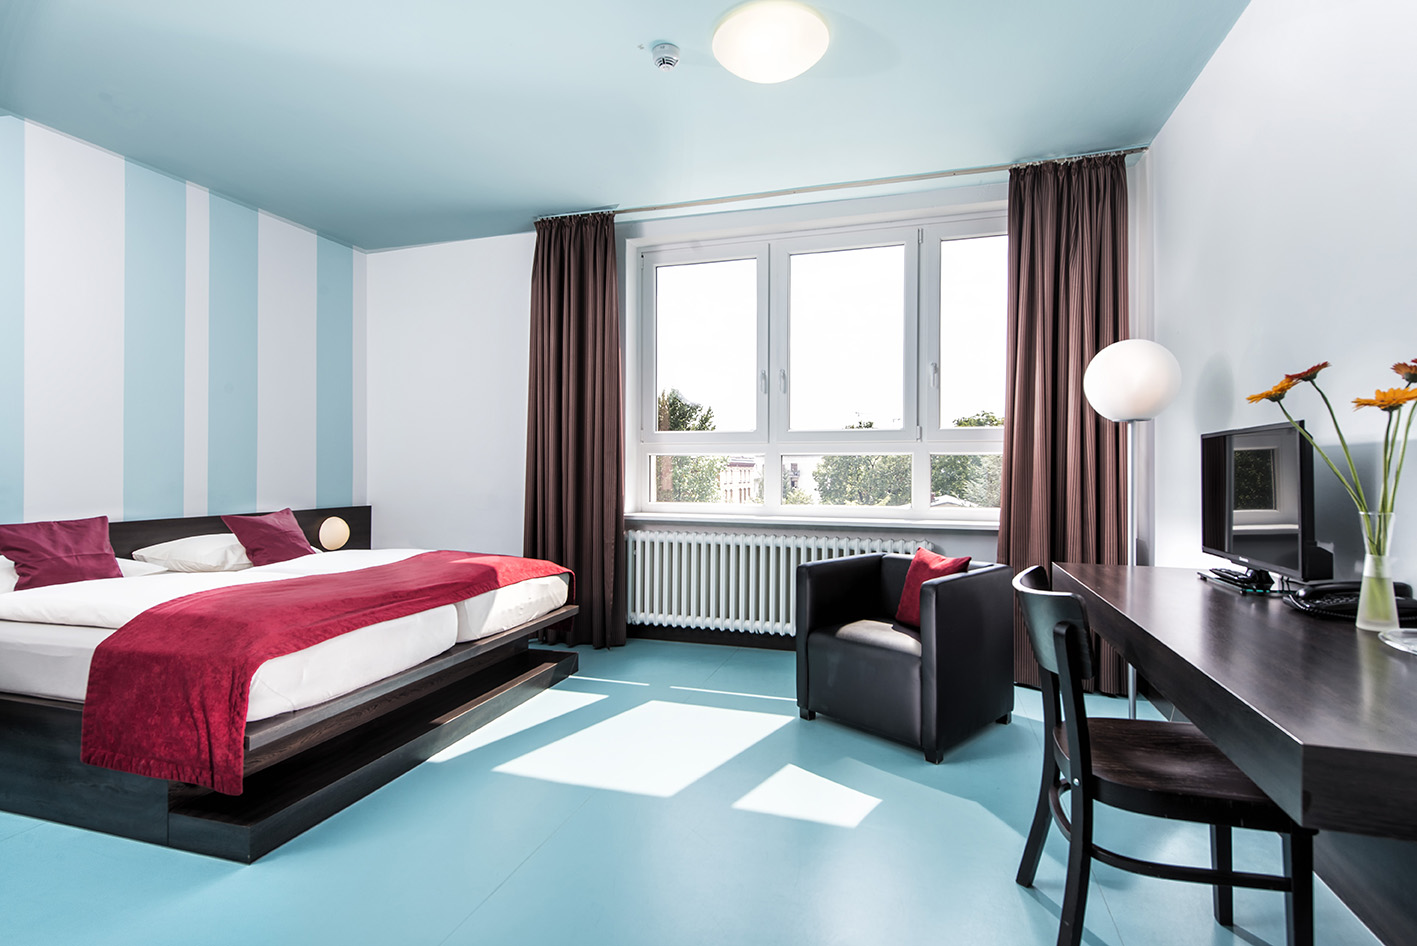 Classic room with doulbe bed